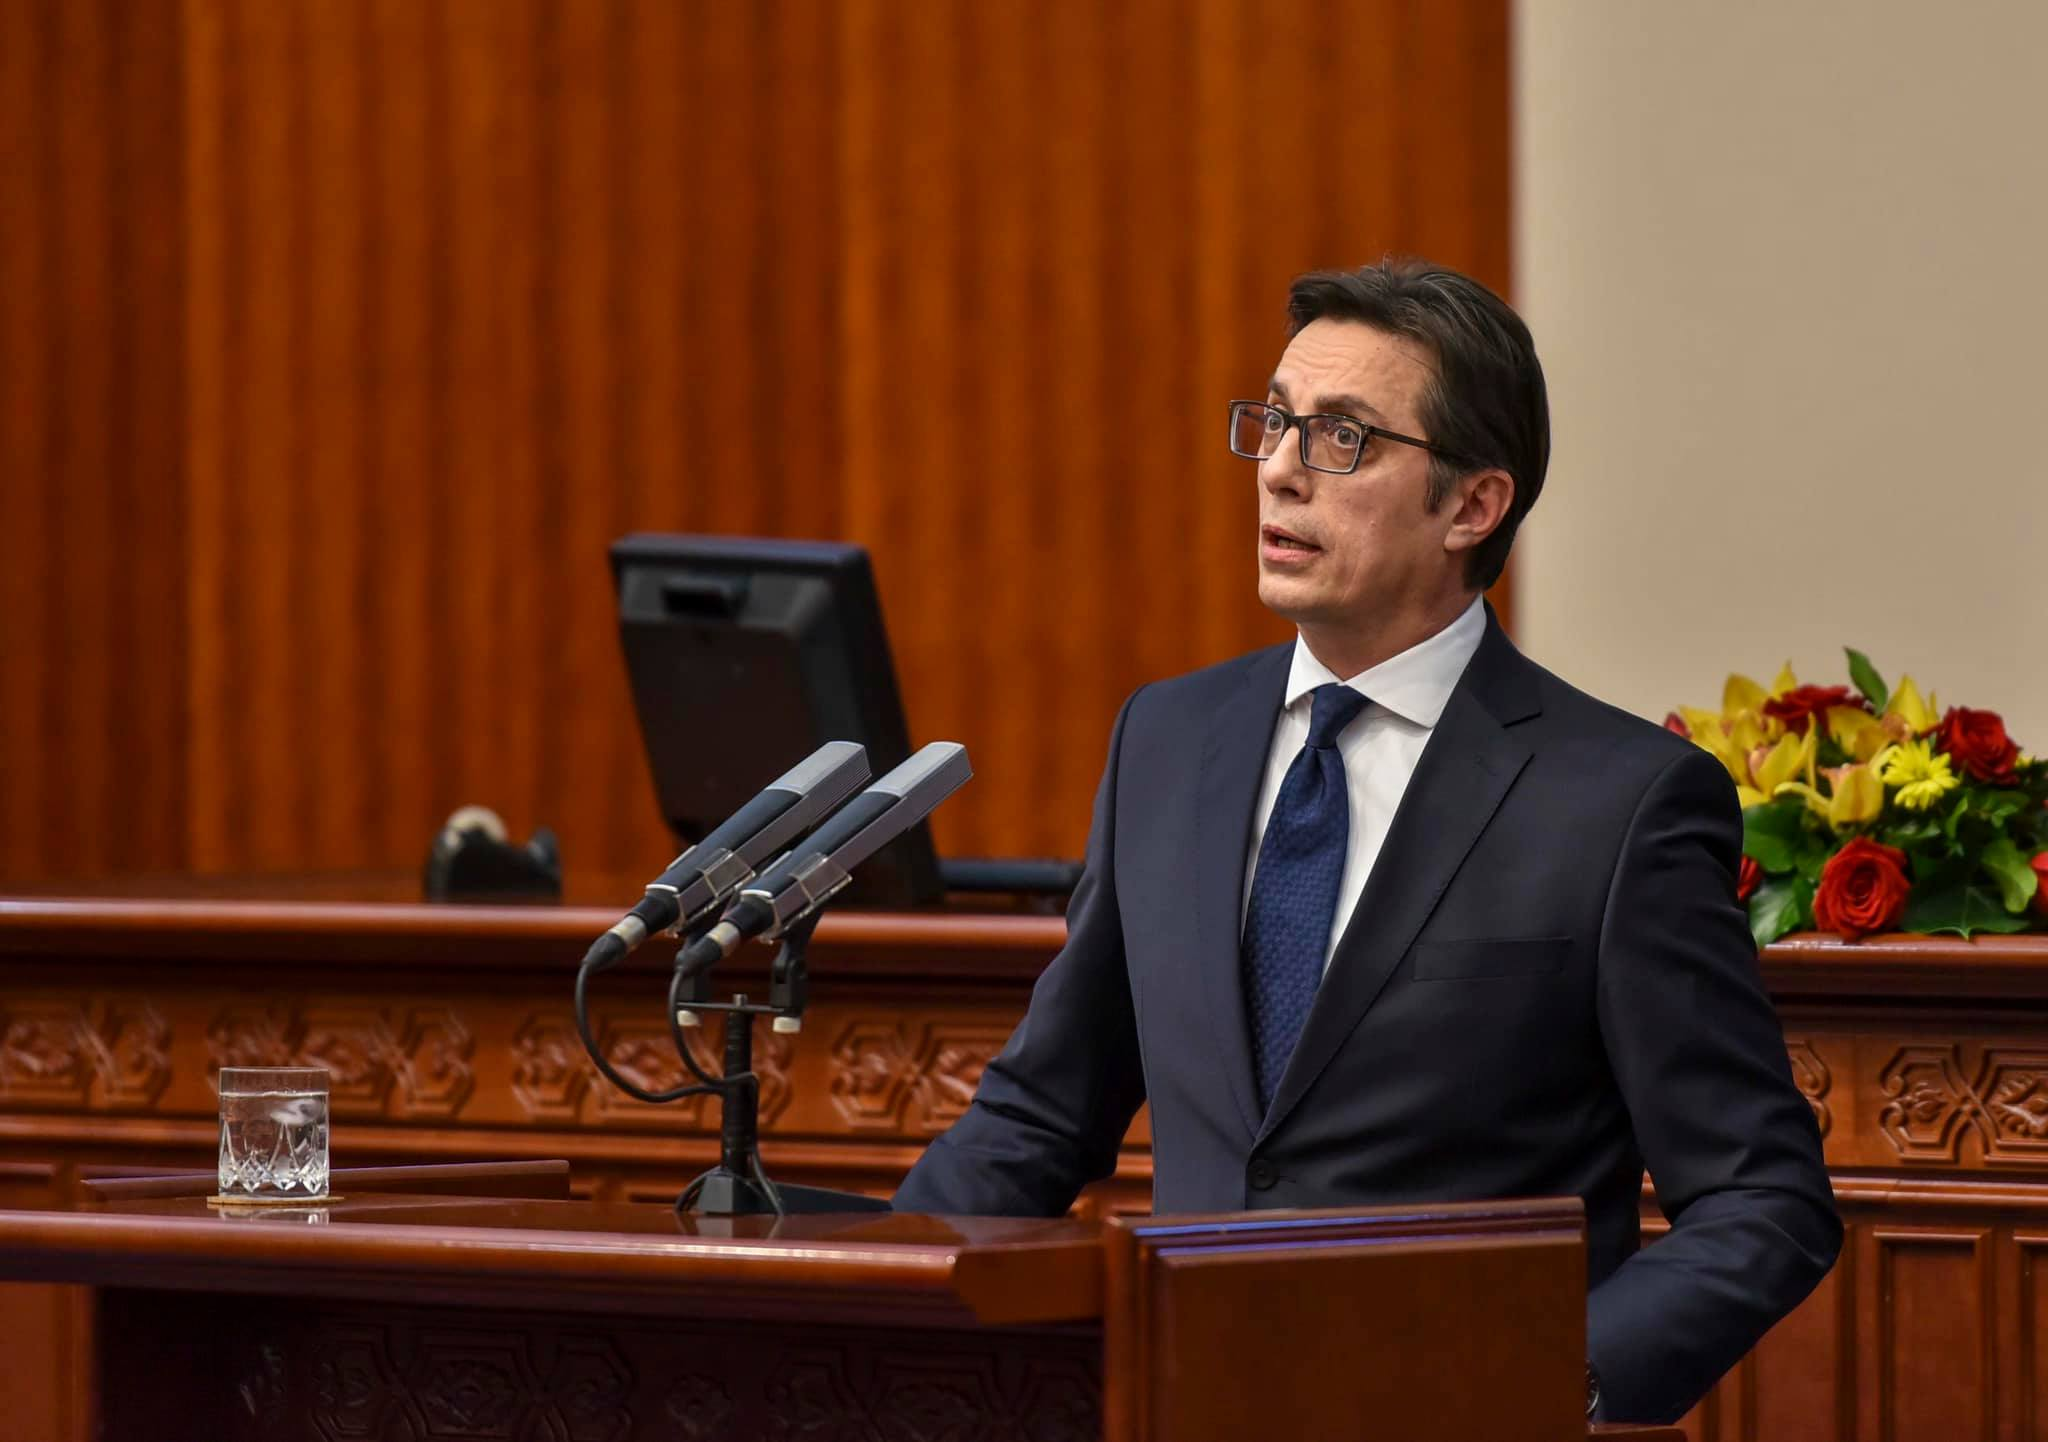 Pendarovski criticizes crime and corruption, calls for unity in European integration